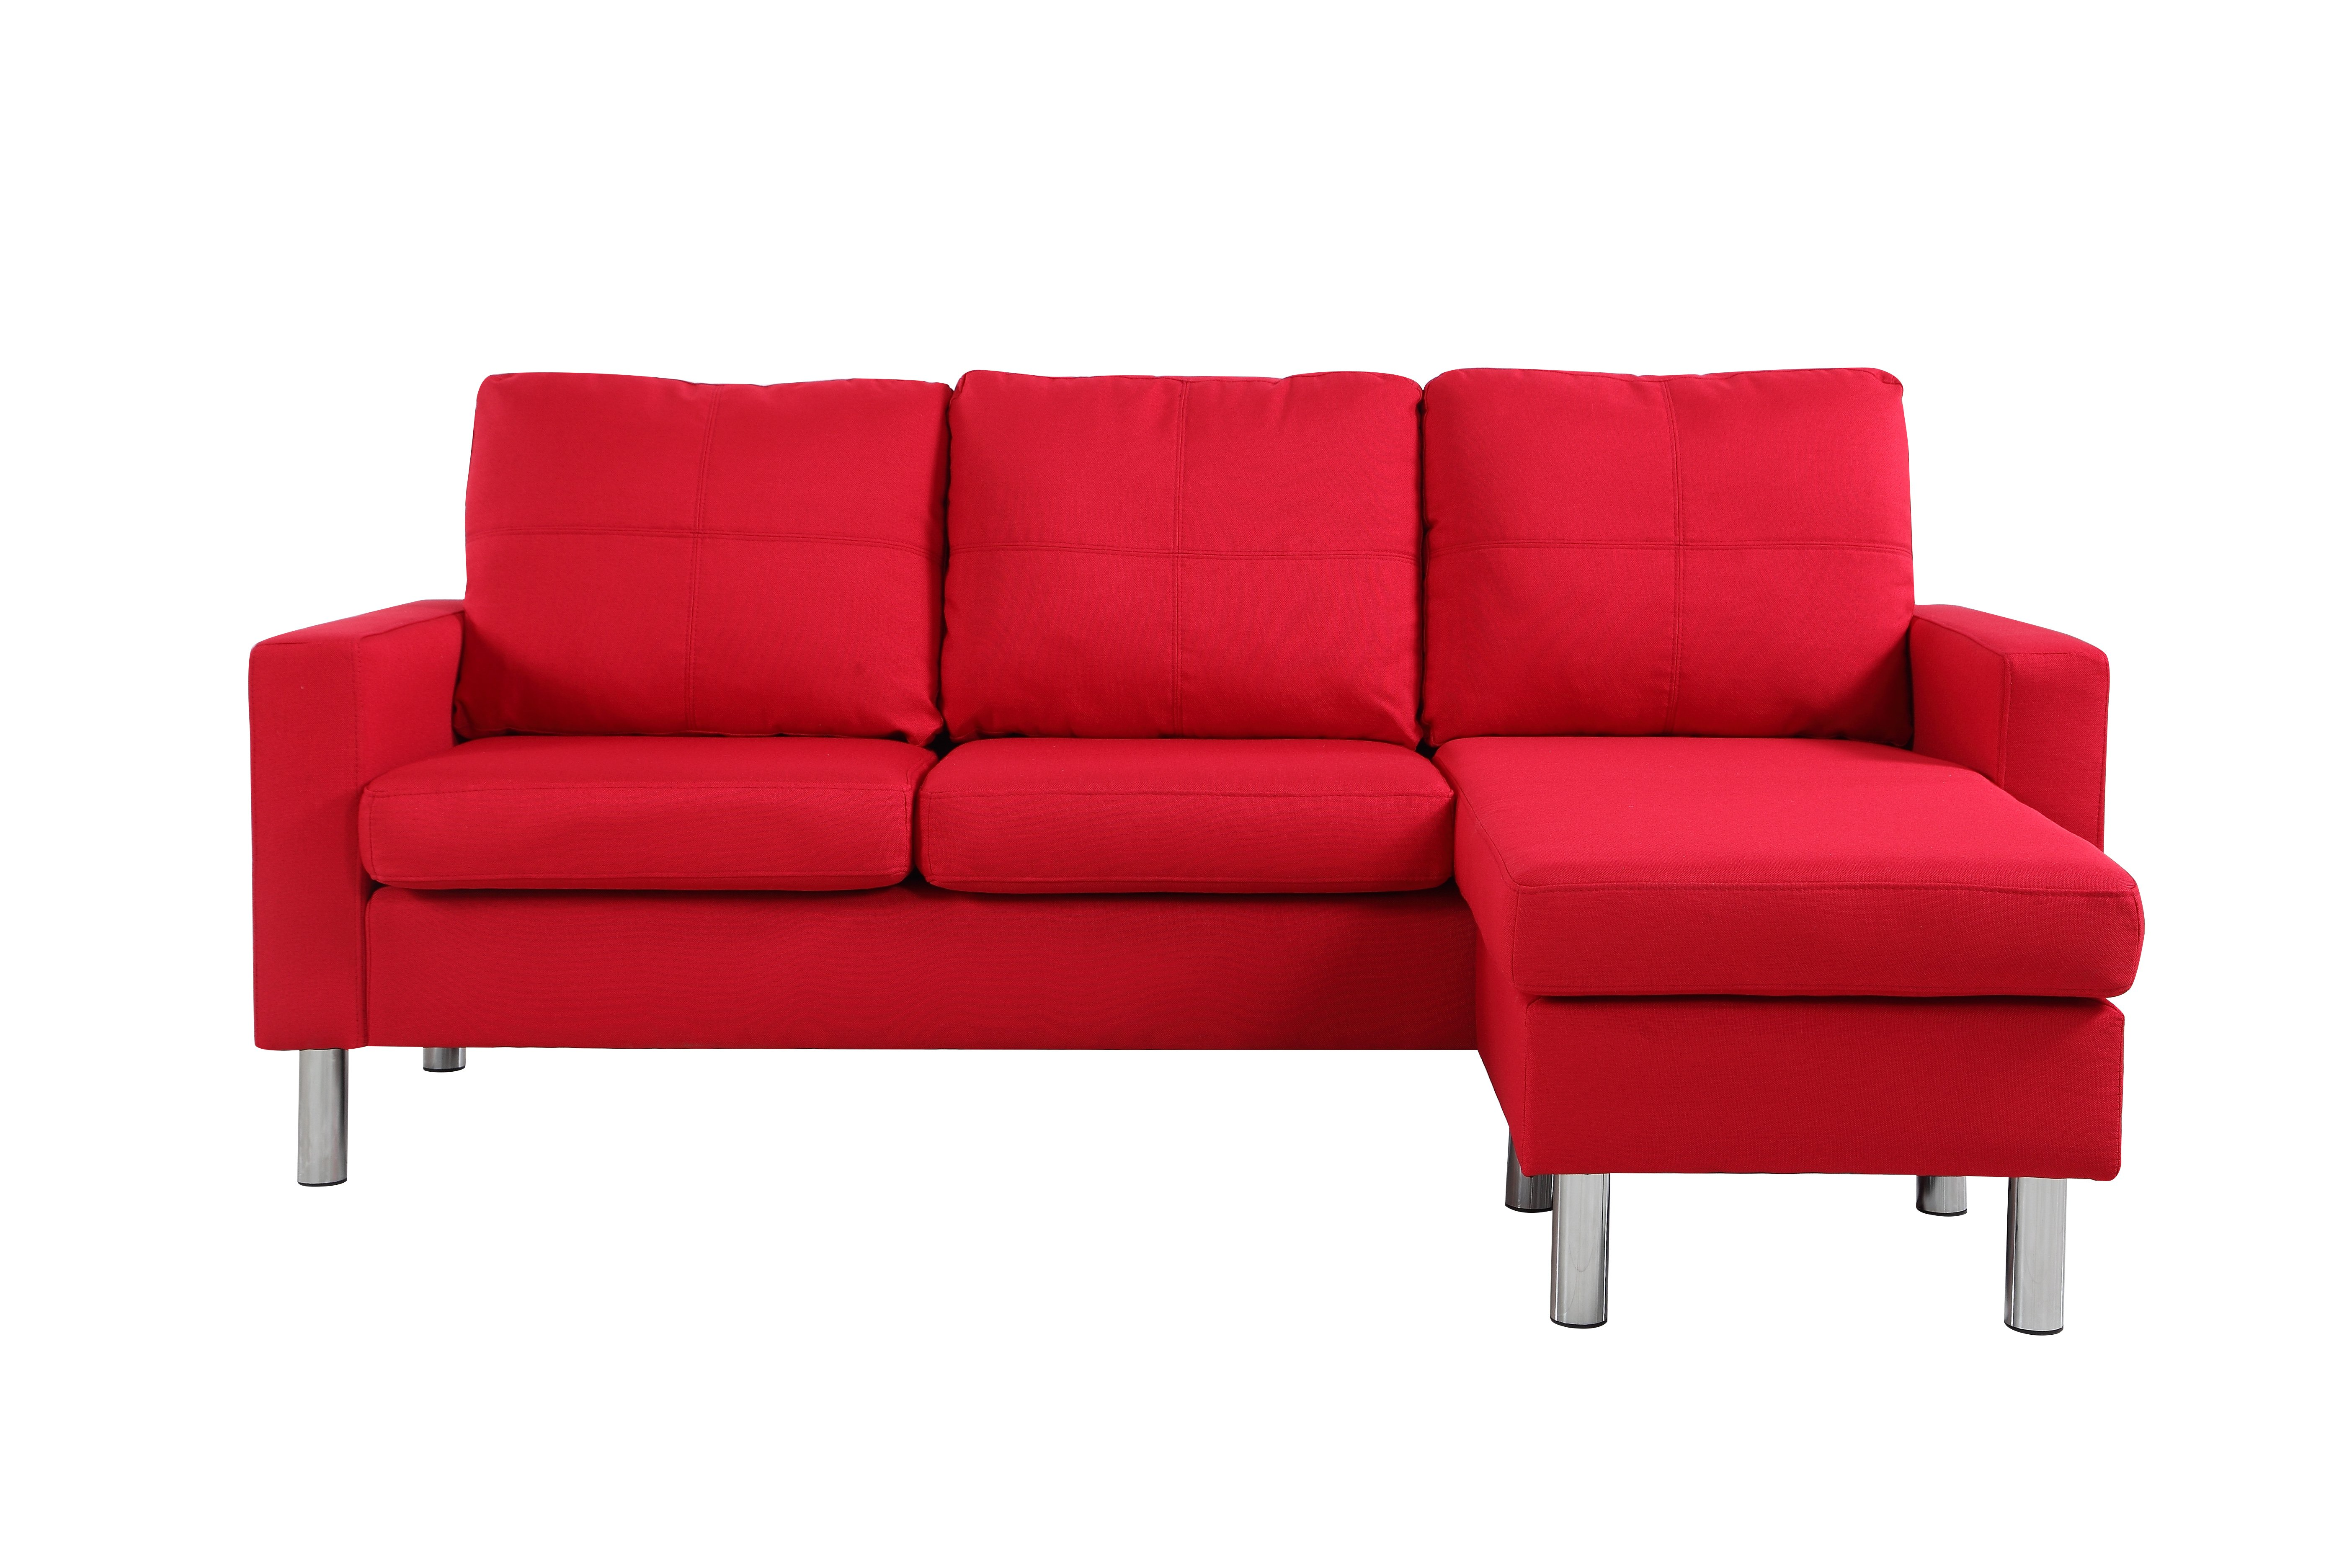 Modern-Living-Reversible-Linen-Fabric-Sectional-Sofa-Small-Space-Red thumbnail 2